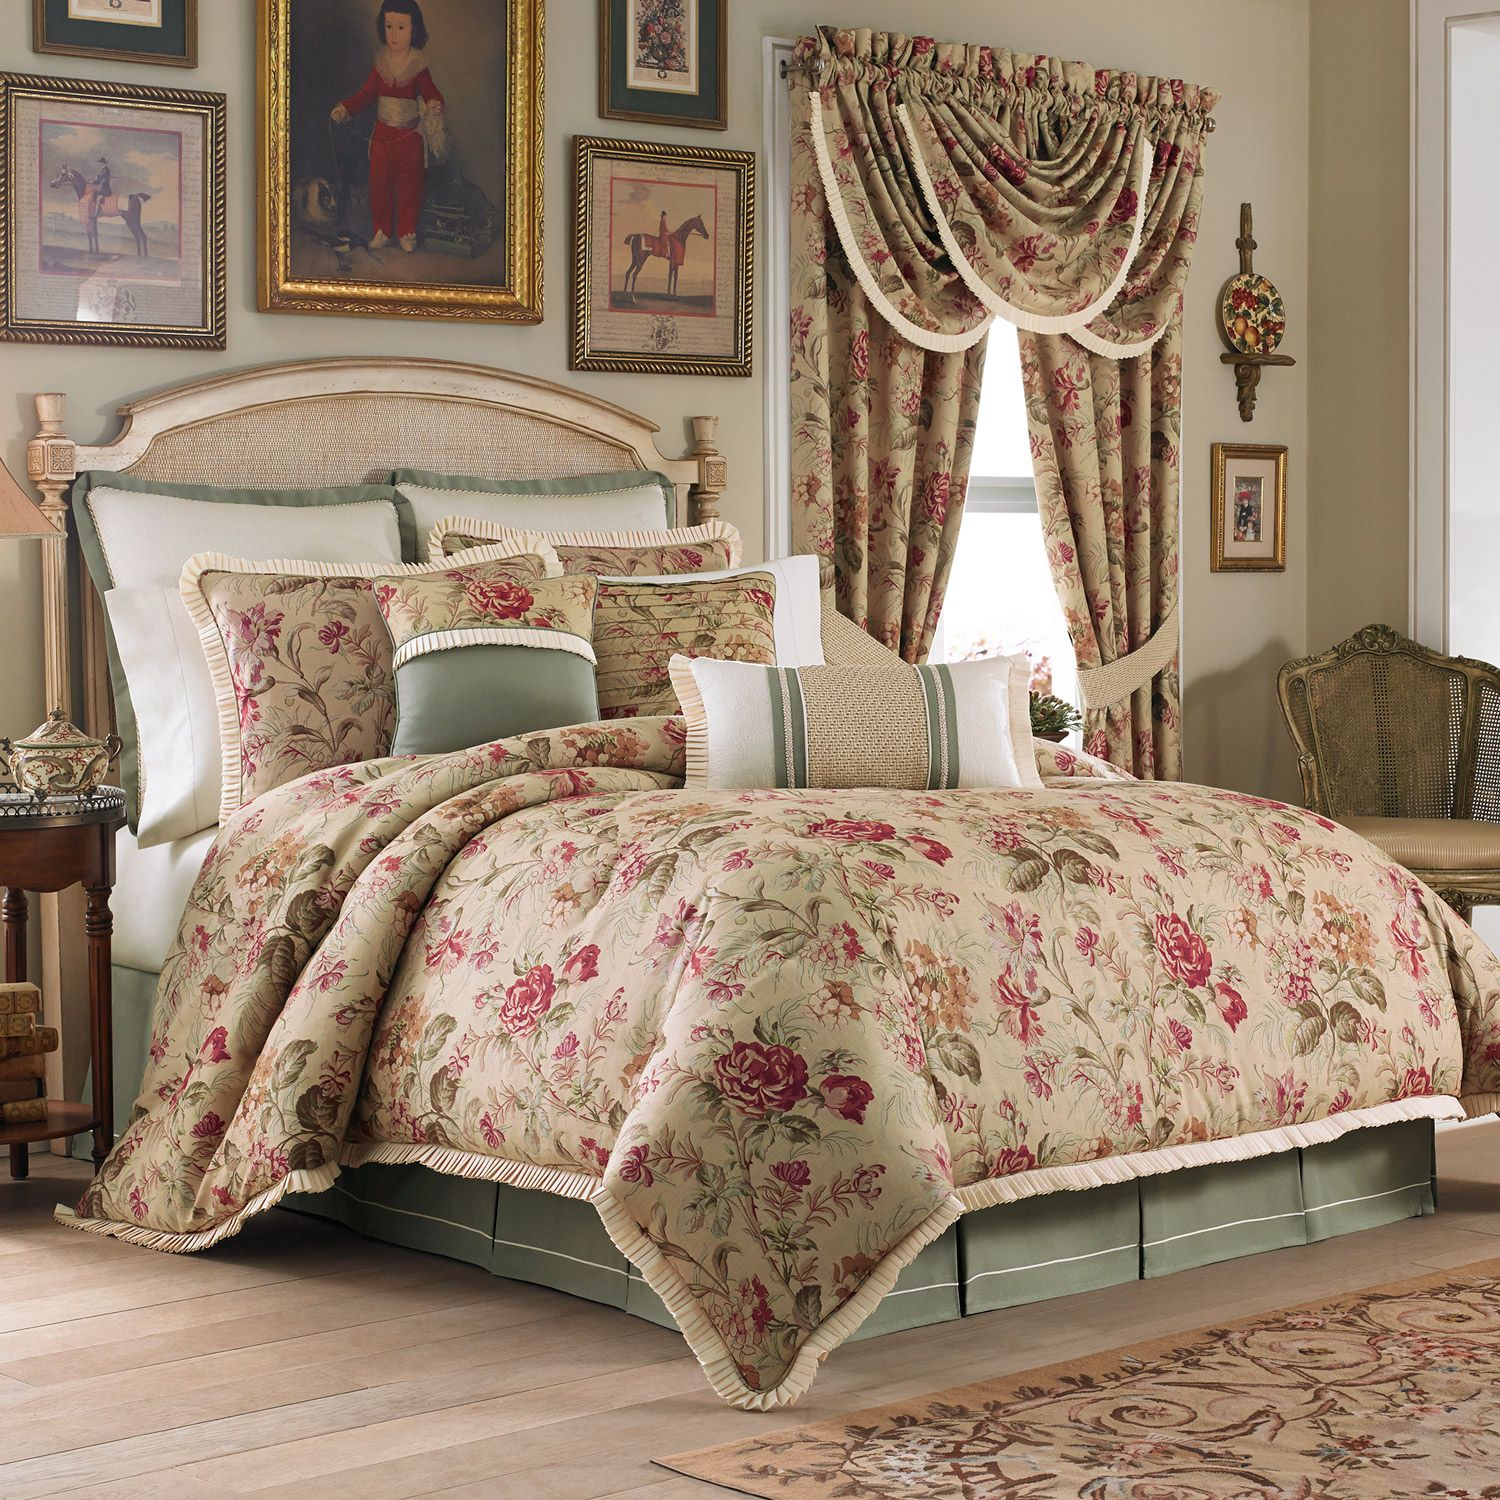 Beautiful queen size comforter sets for bedroom design with cheap queen size comforter sets